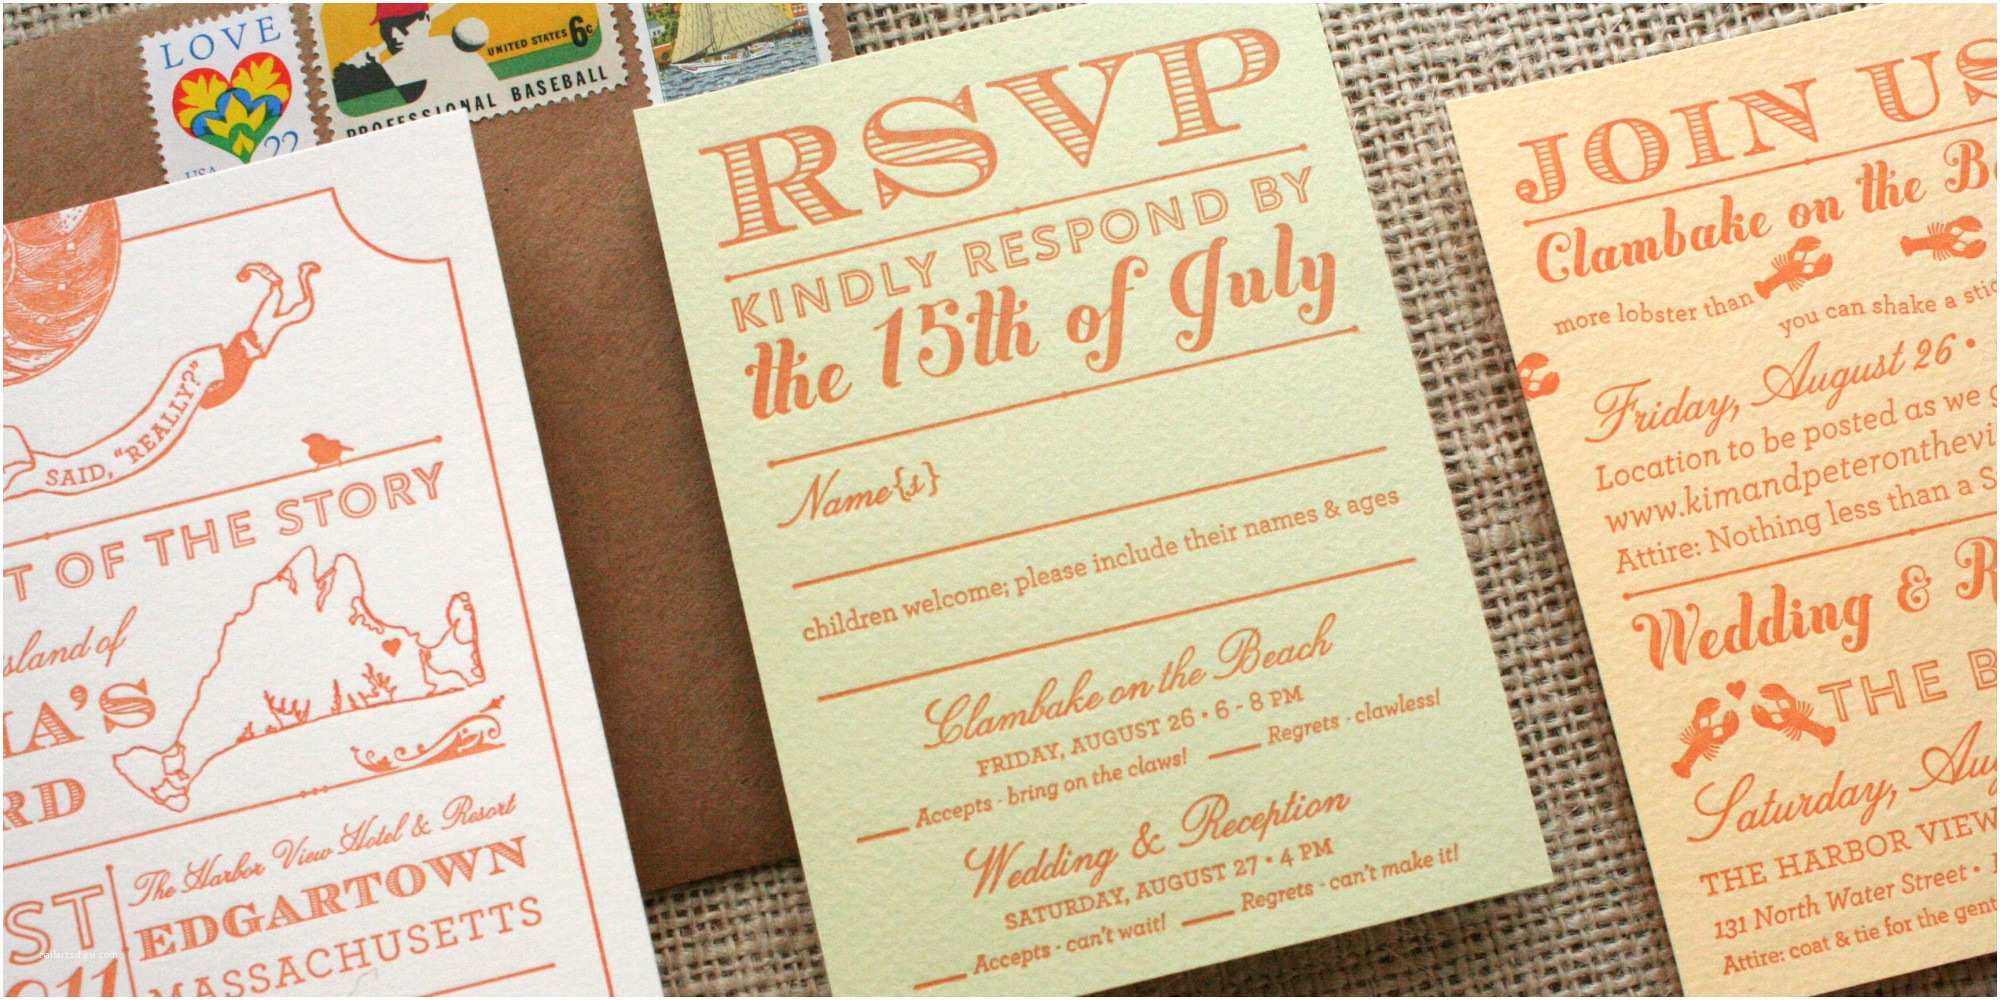 Facebook Wedding Invitation Want Wedding Guests to Rsvp Faster This is How to Frame